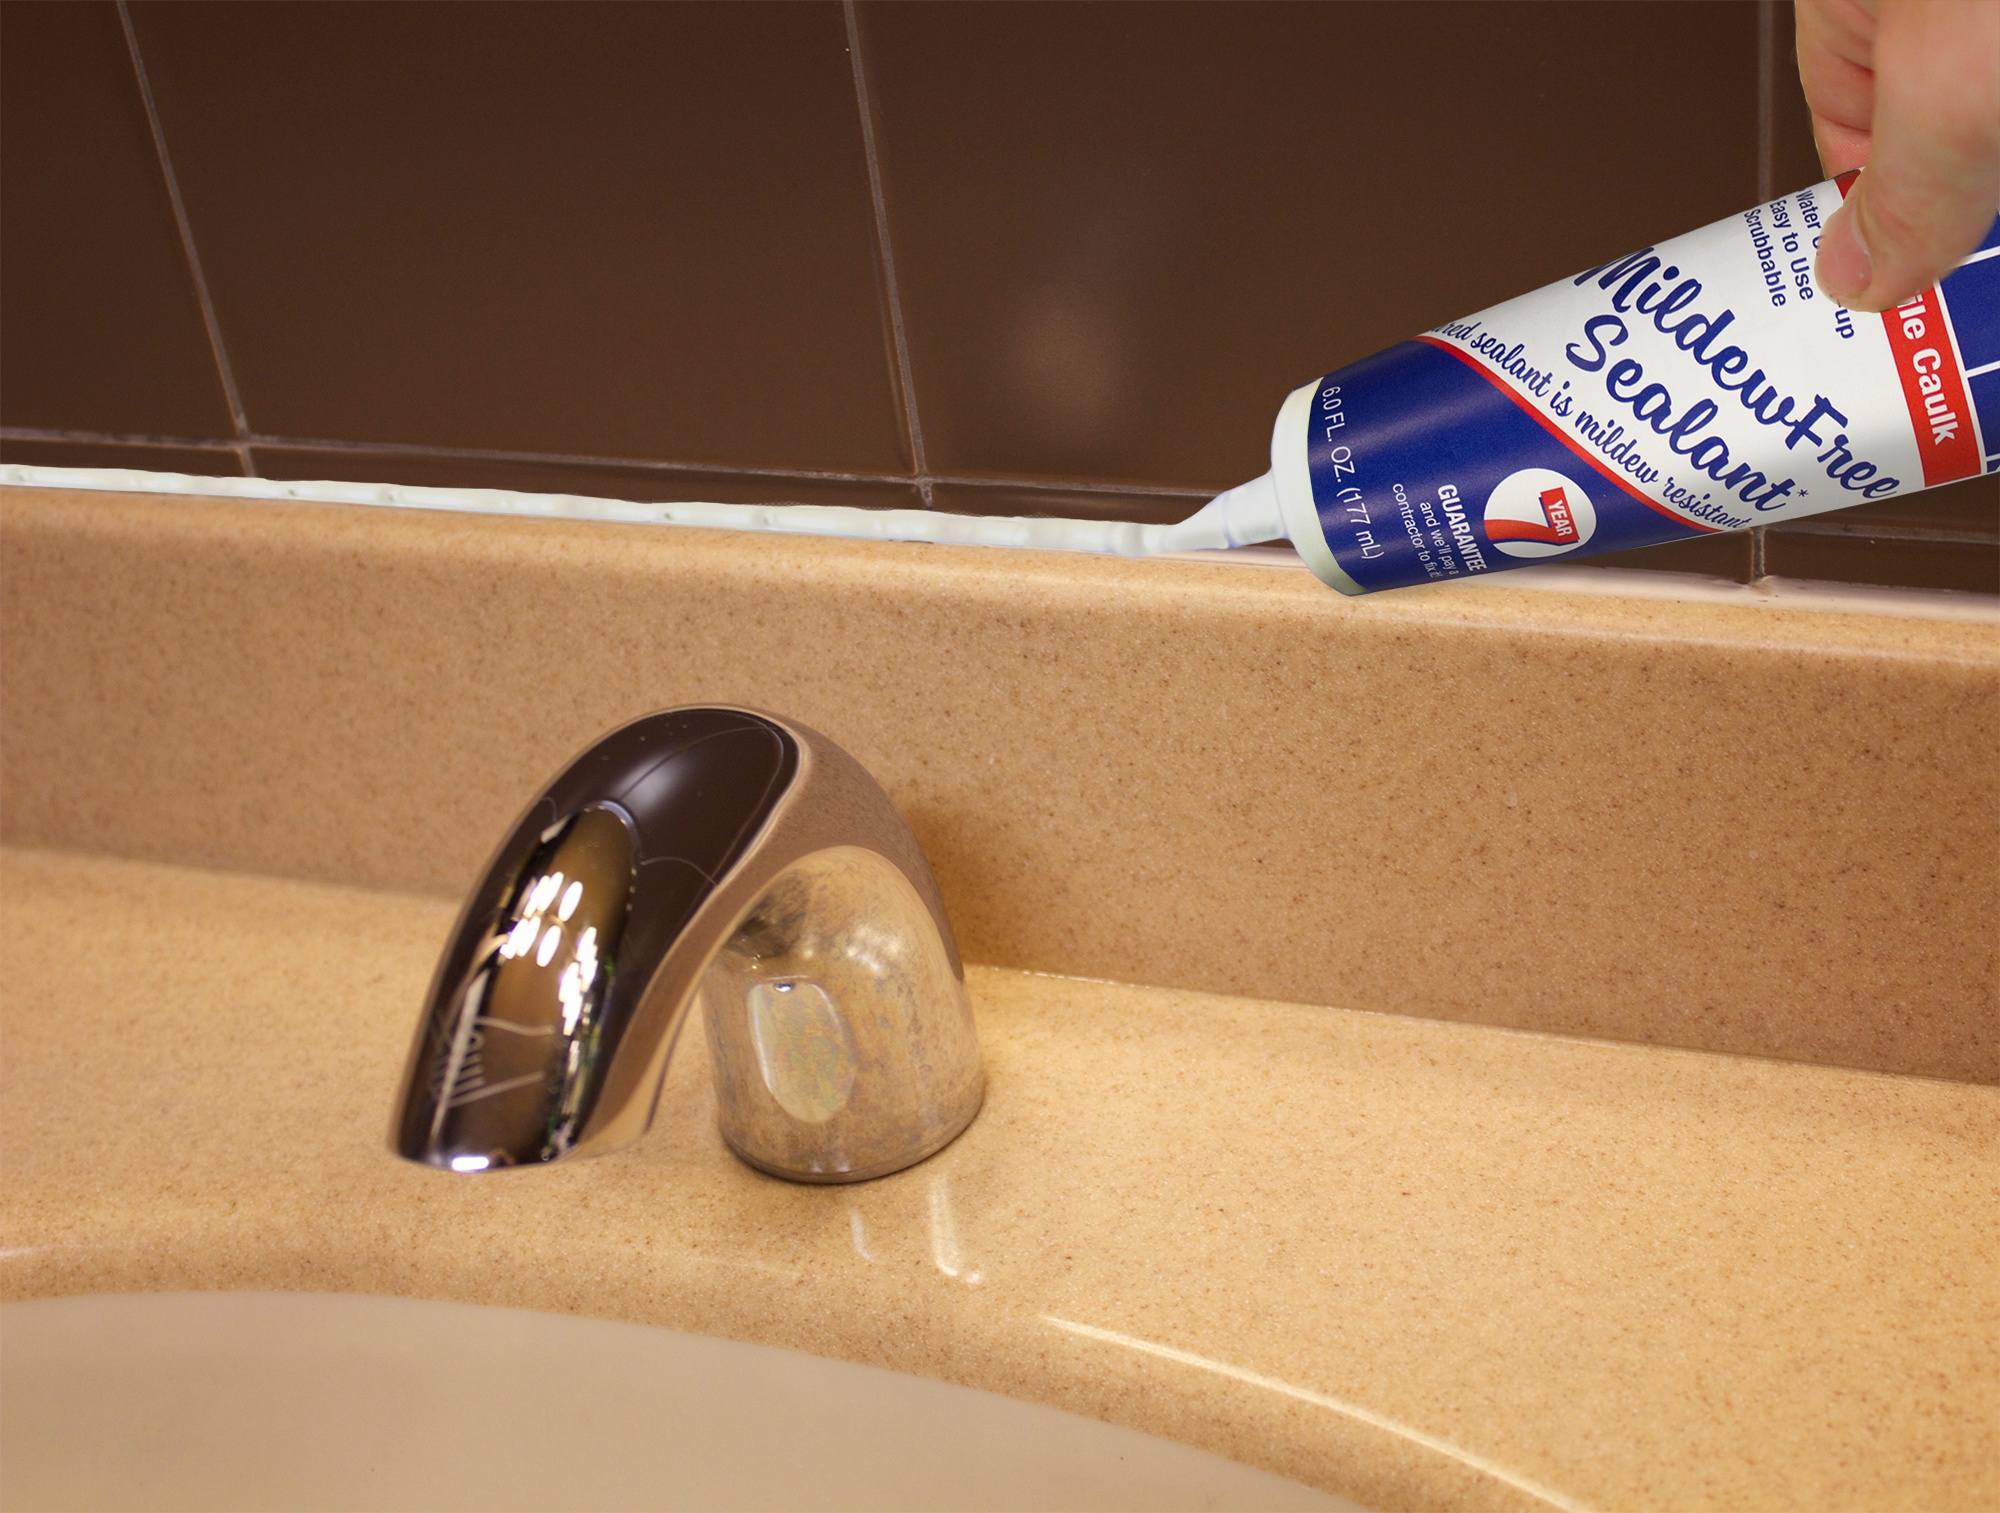 Bathroom Caulking Is That Mold And Mildew In Your Bathroom Under The Caulk Or On Top